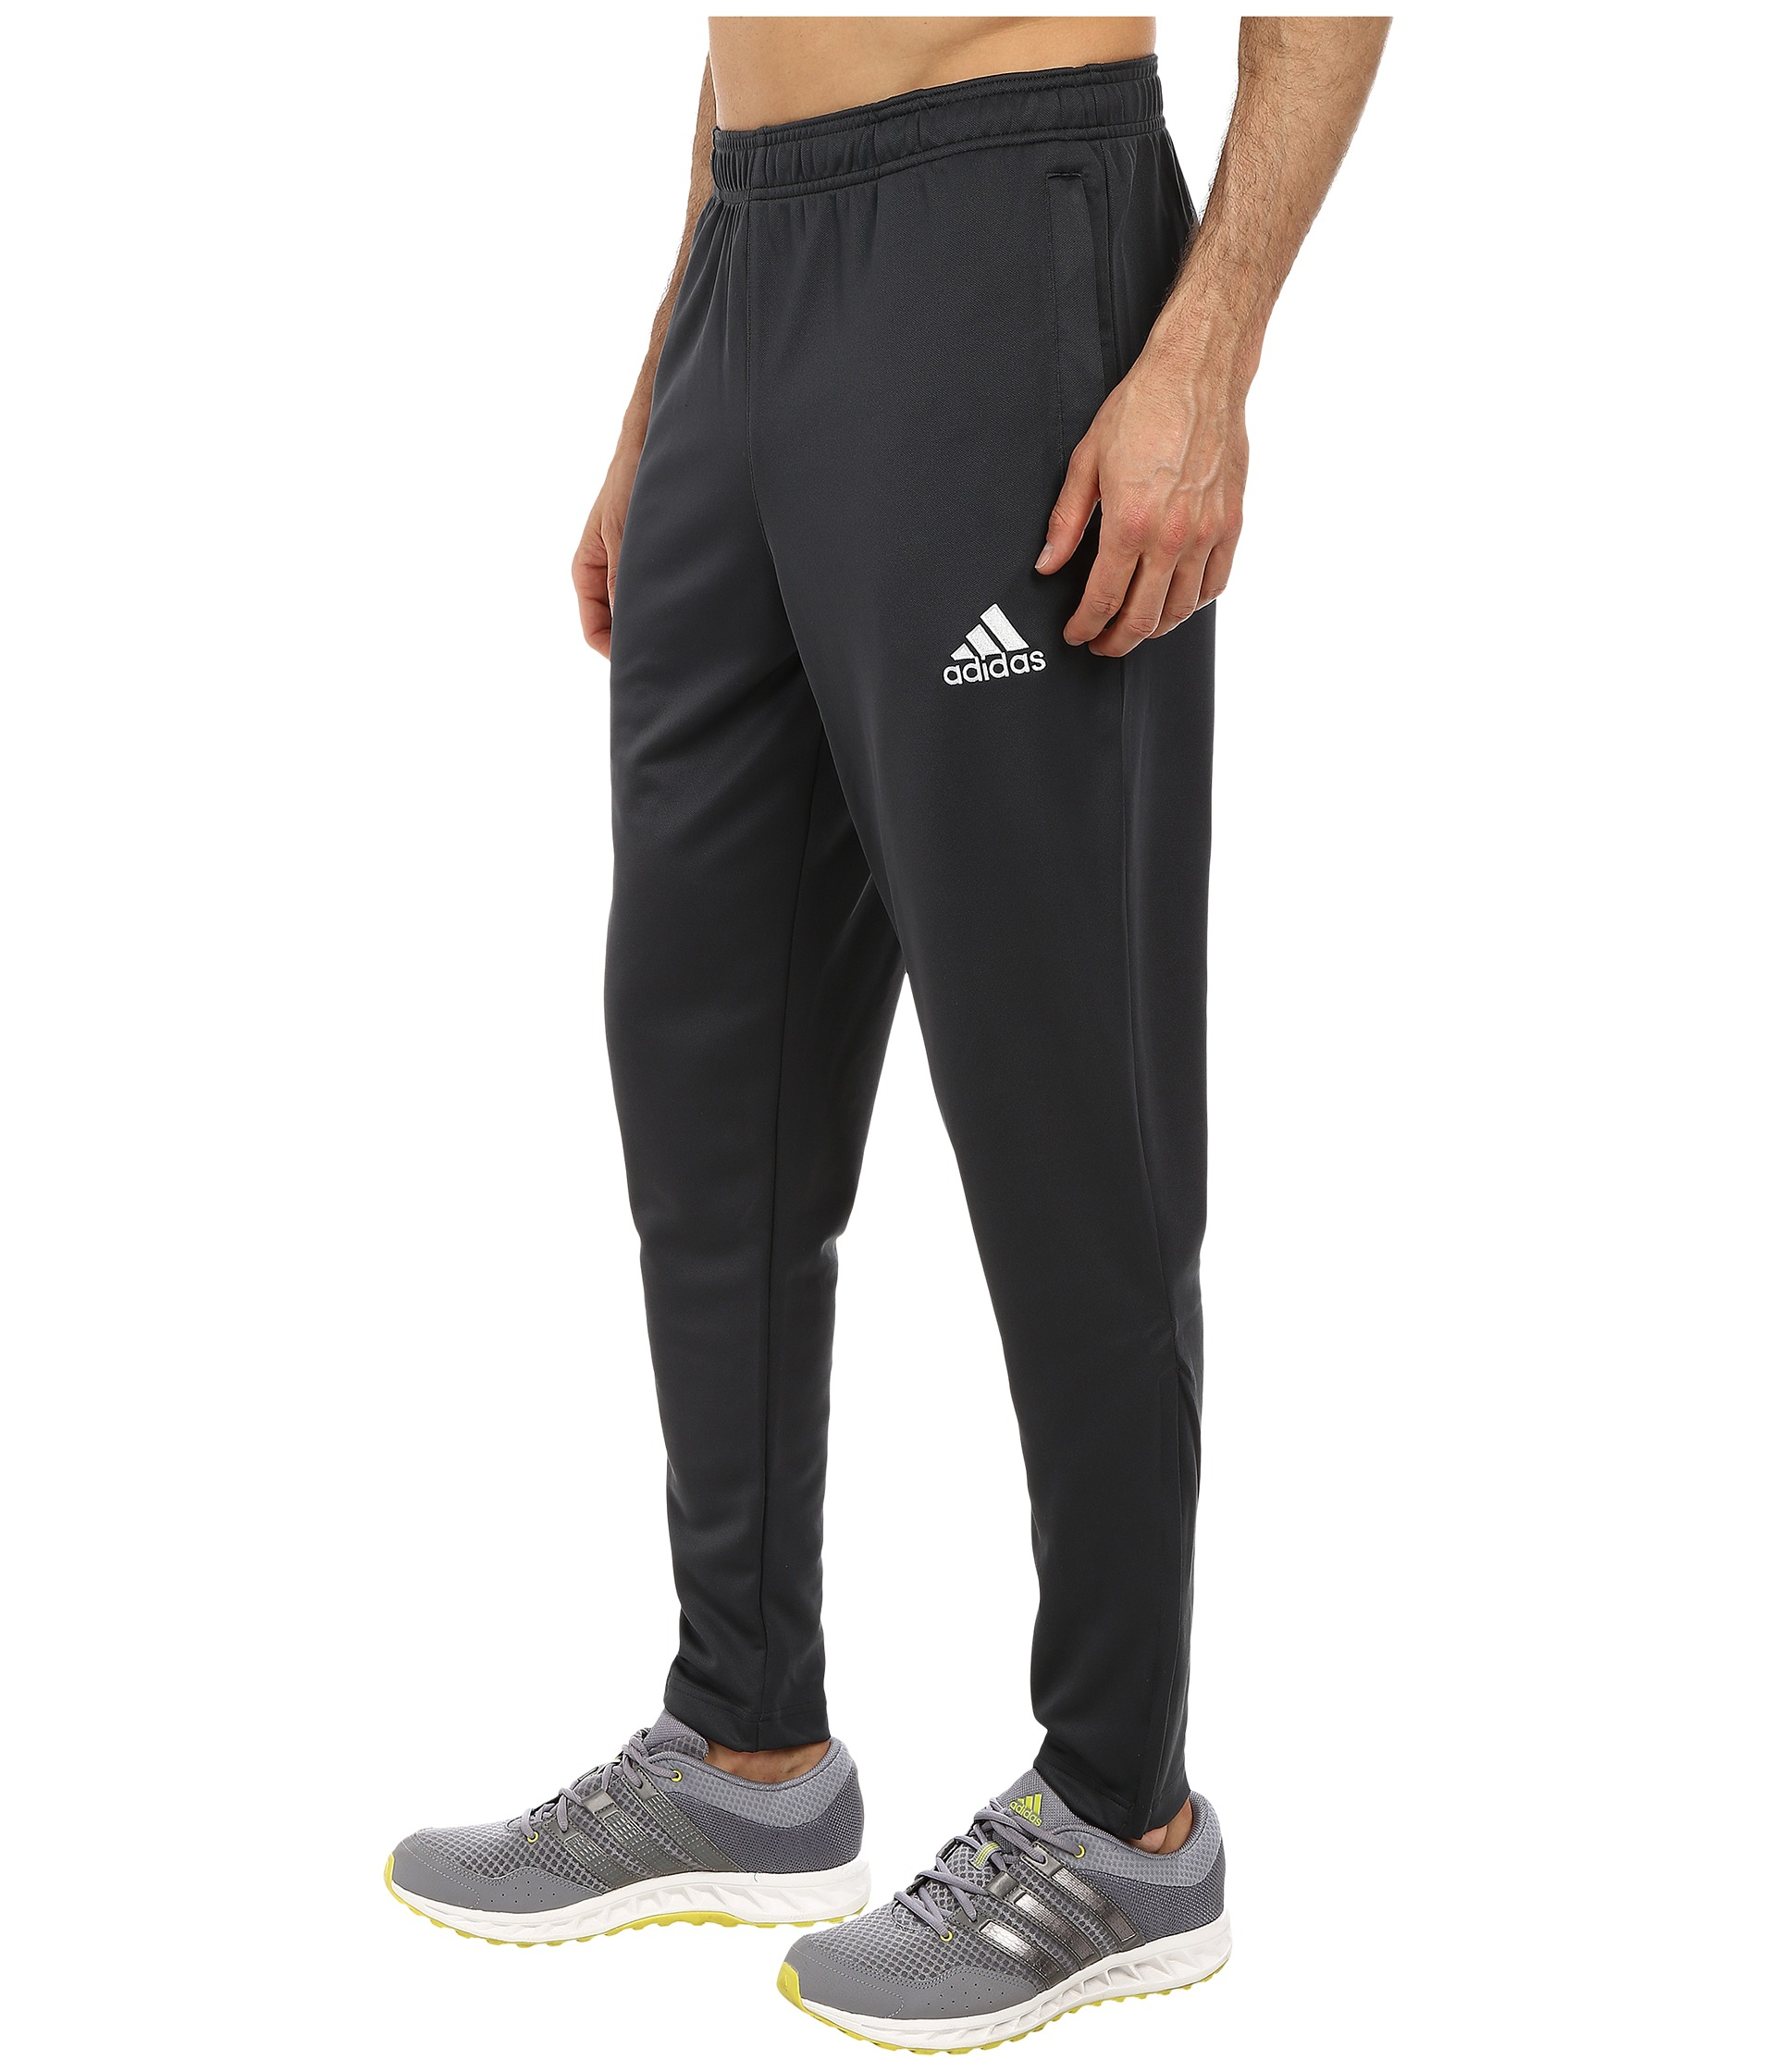 adidas climalite training pants women